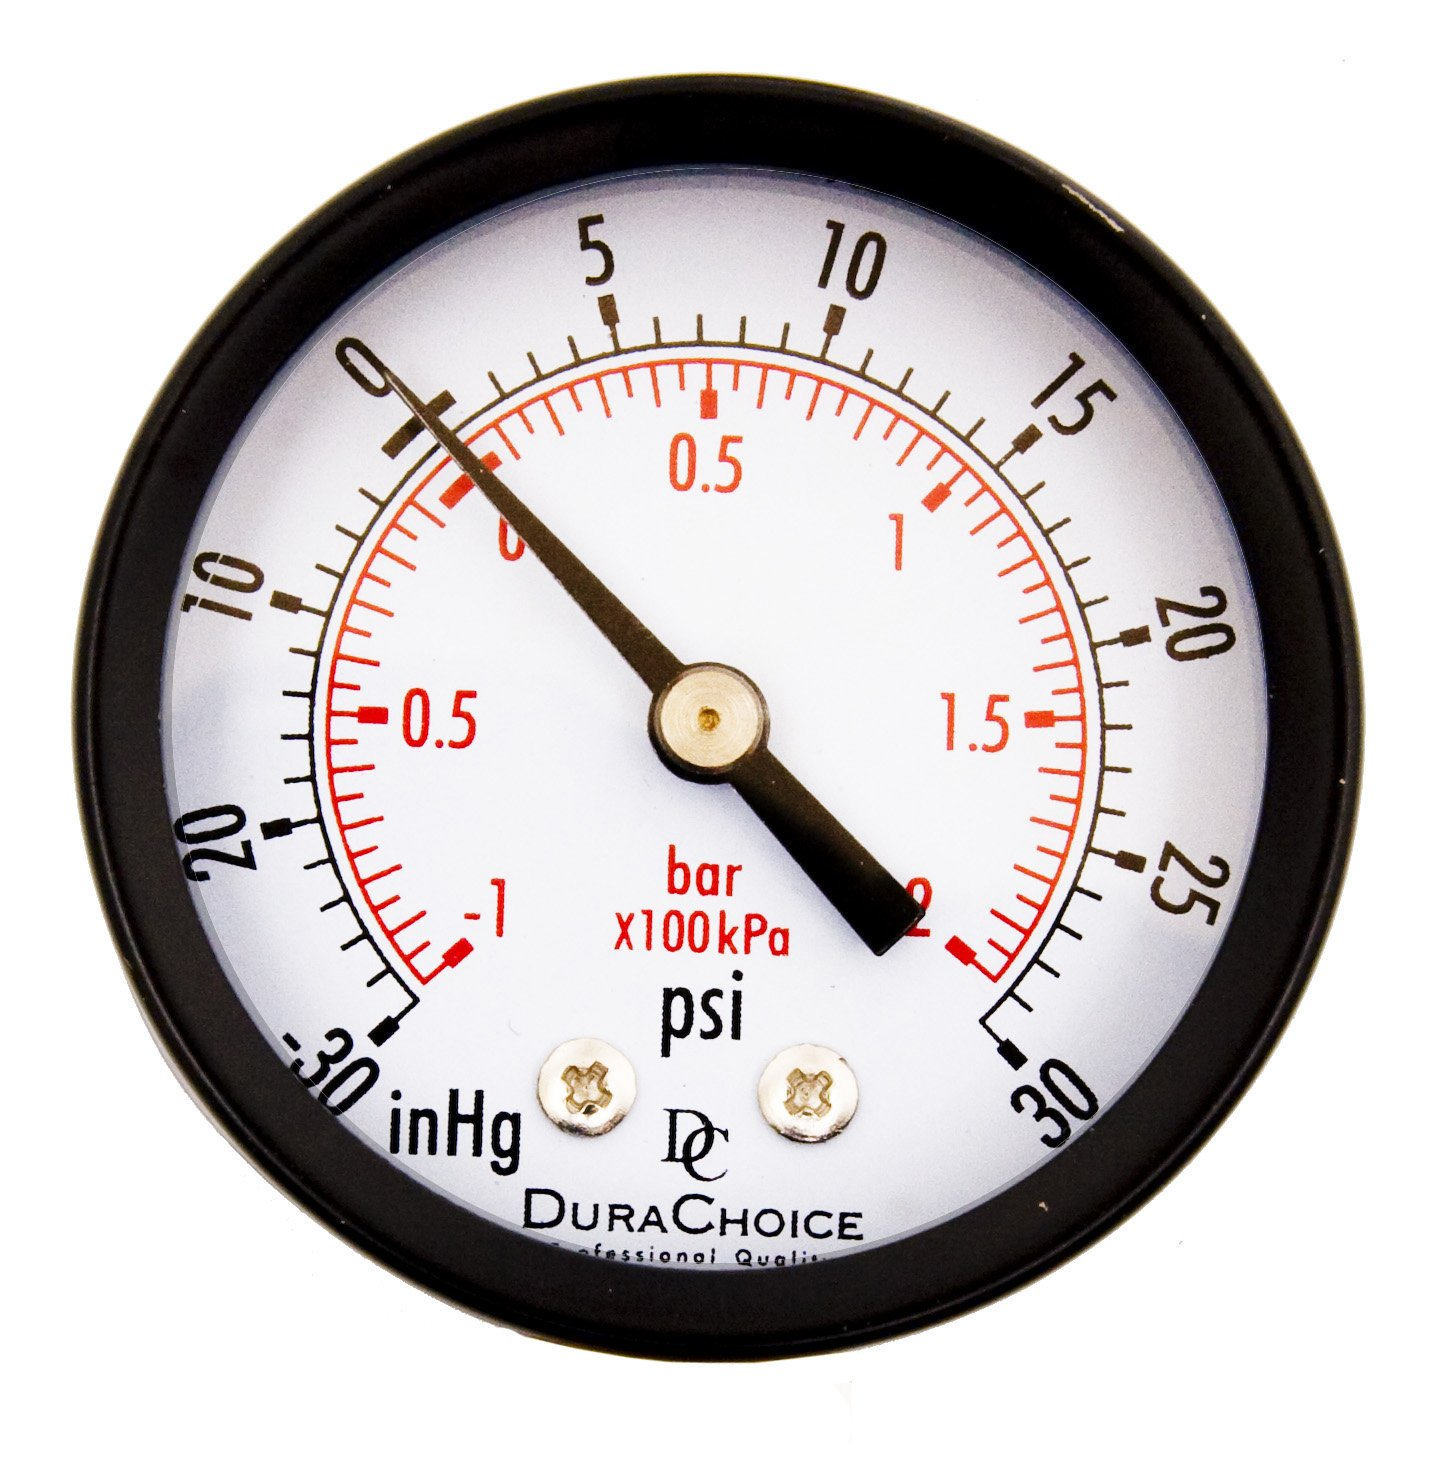 "DuraChoice 2"" Dial Utility Vacuum Pressure Gauge for Air Compressor Water Oil Gas, 1/4"" NPT Center Back Mount, Black Steel Case, -30HG/30PSI"